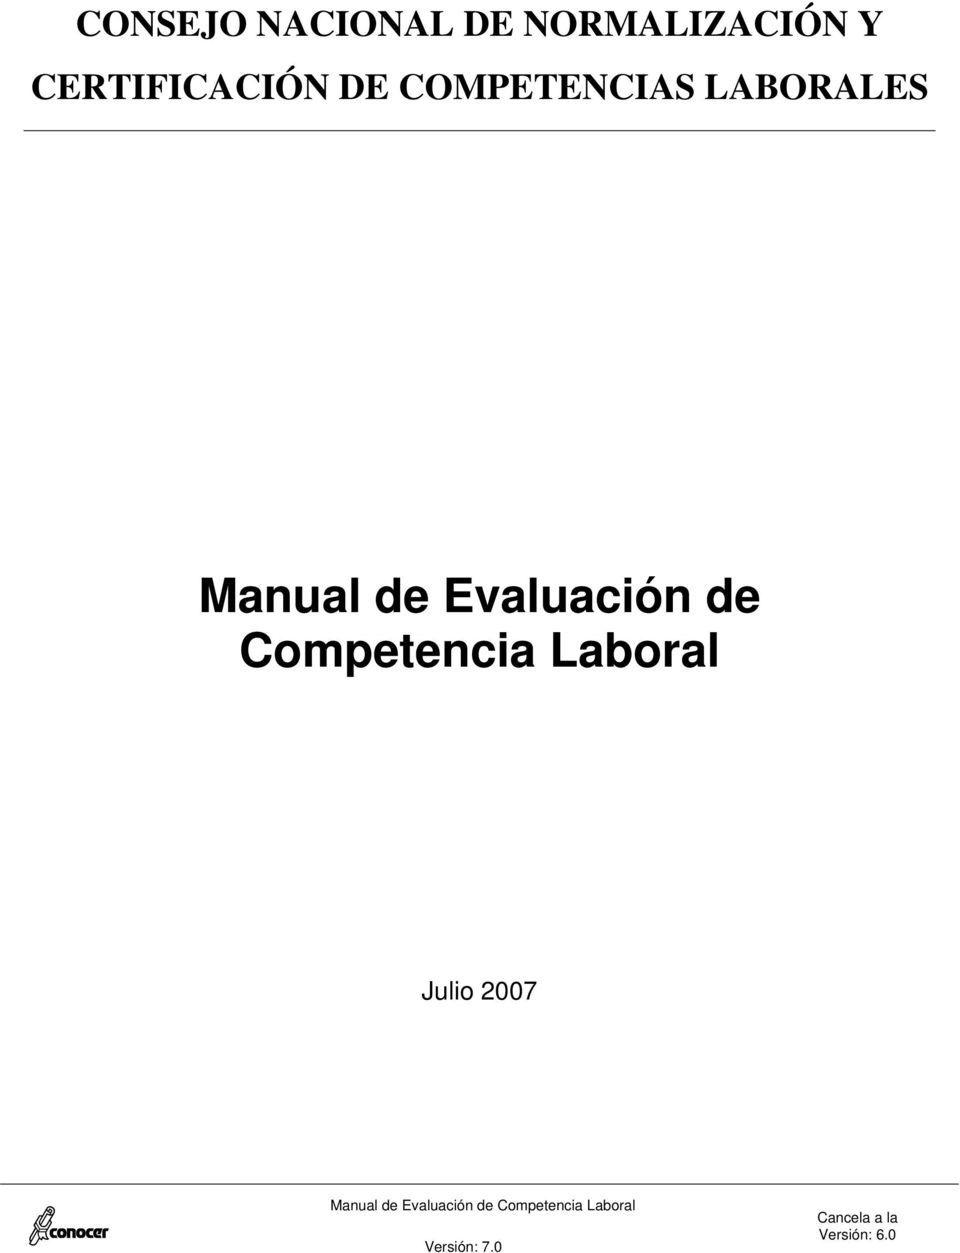 Competencia Laboral Julio 2007 Manual de Evaluación